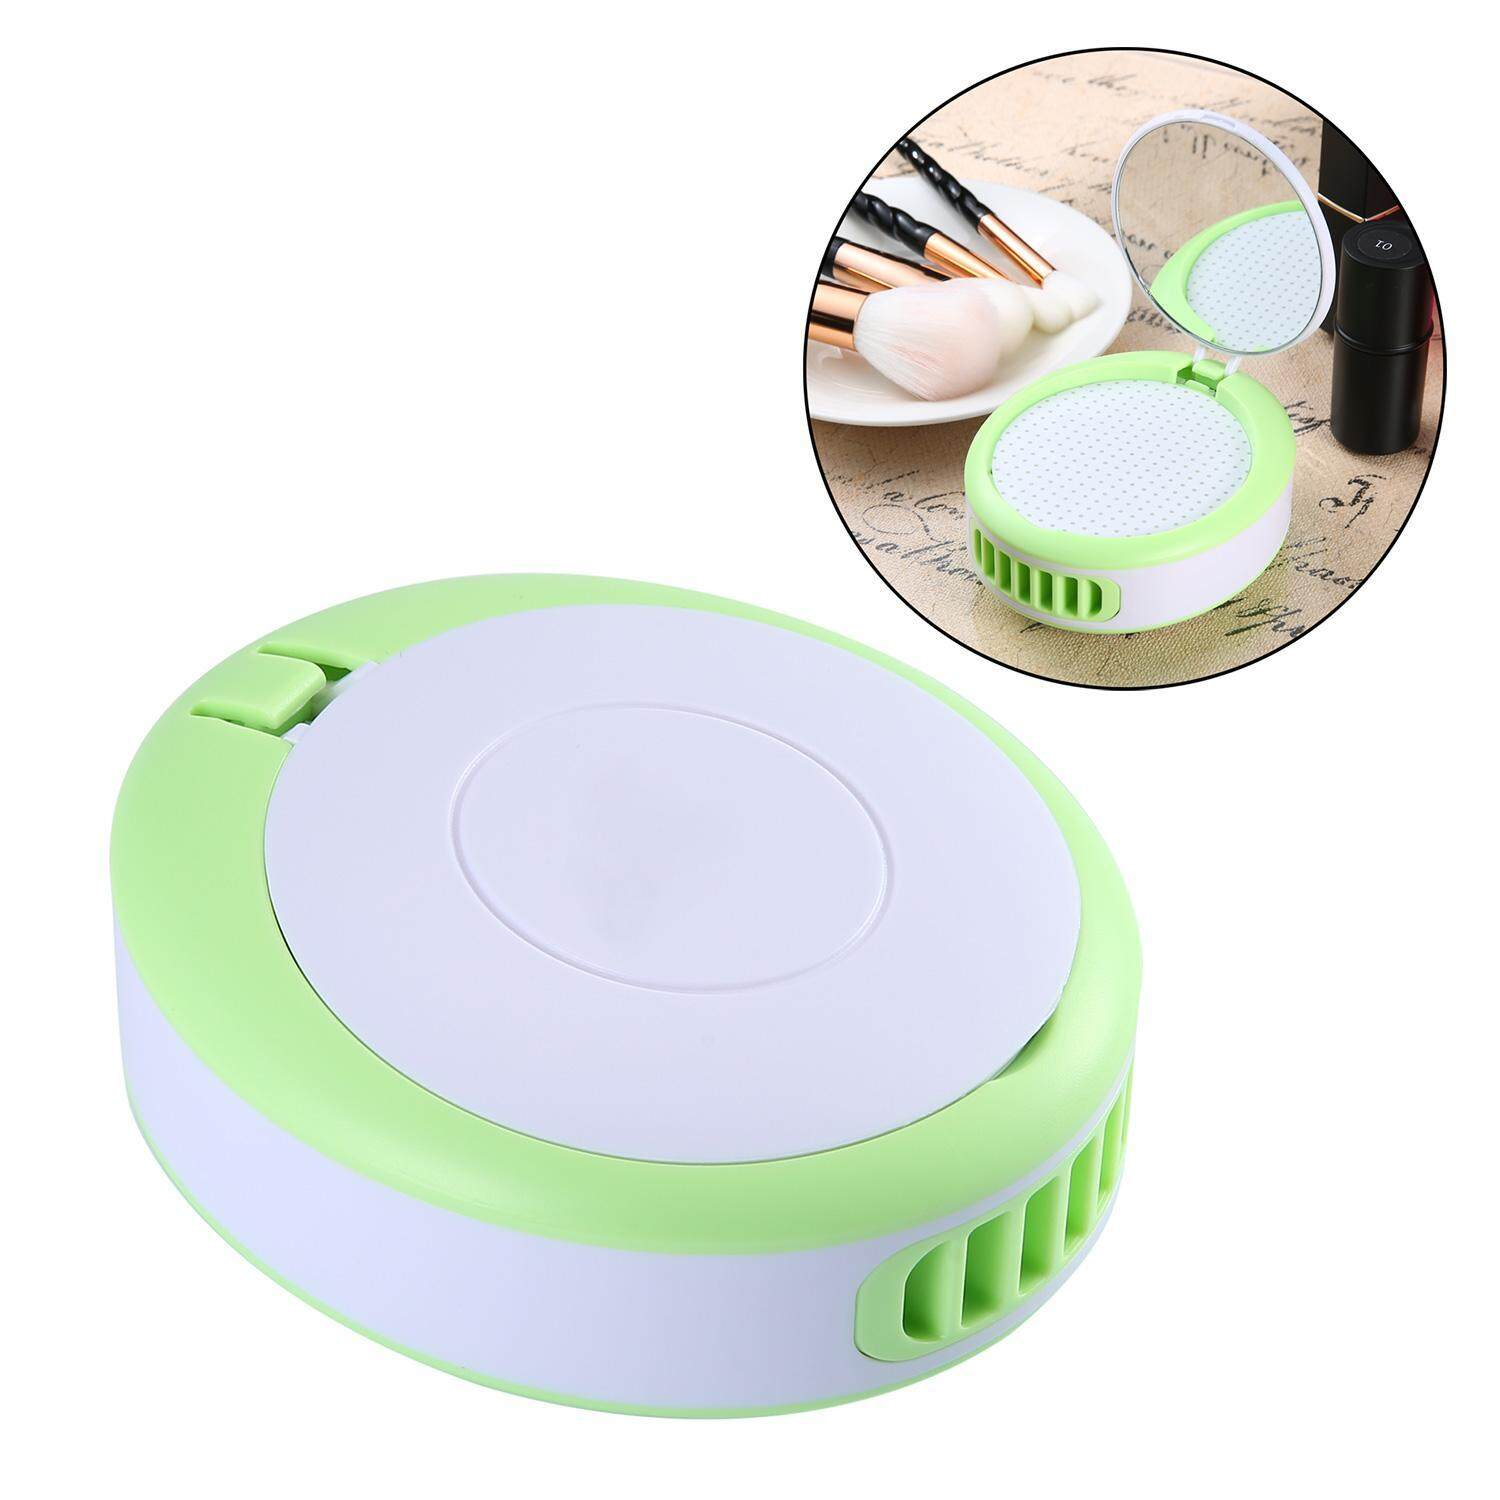 XUNMEI Summer Cooler Mini Portable Usb Fan Handheld Bladeless Fan With Makeup Mirror(Green) - intl